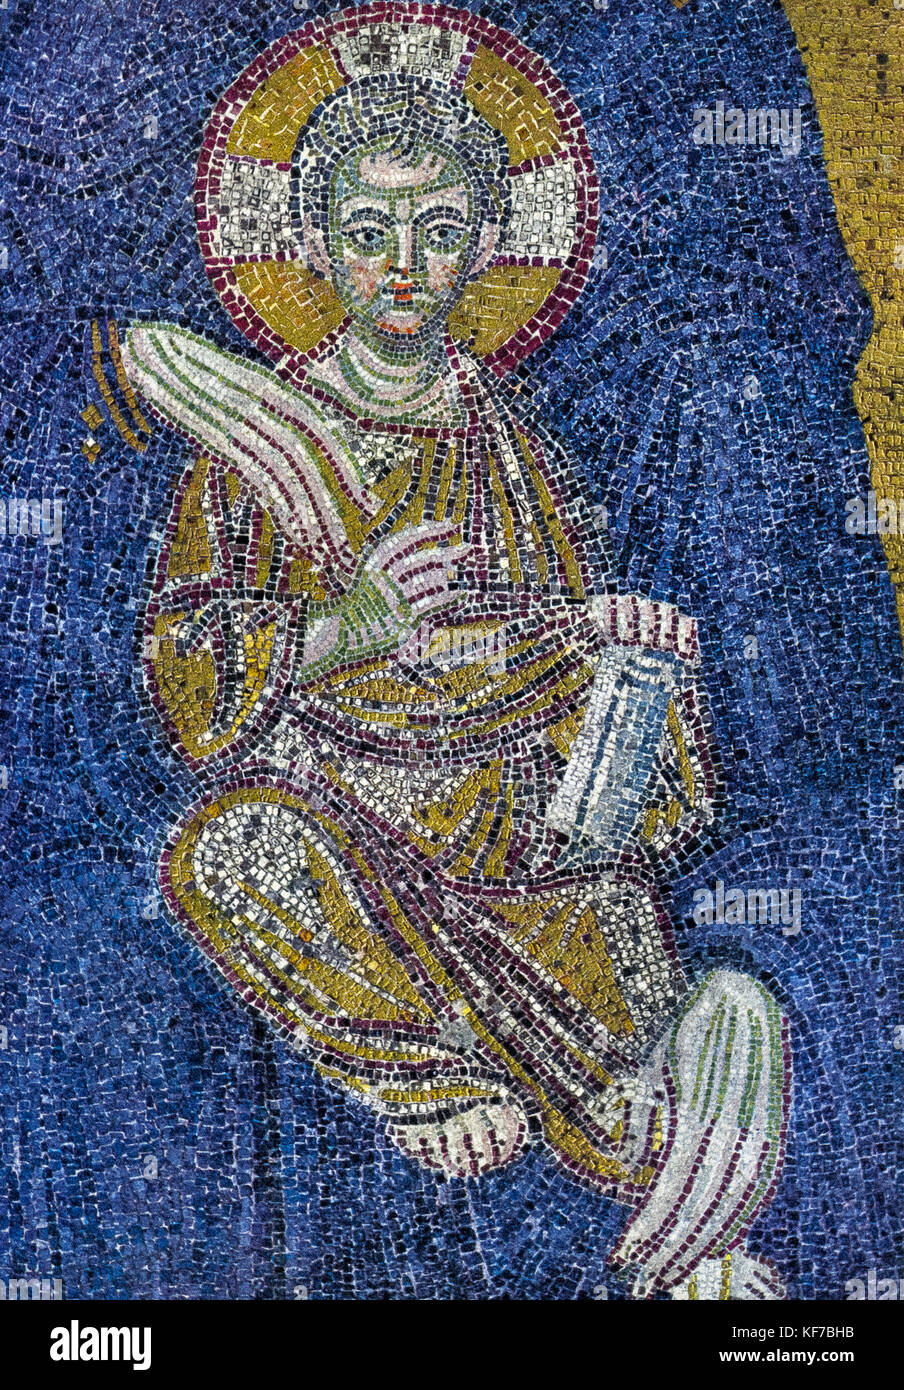 Turkey Istanbul Basilica of the Hagia Sophia - mosaic Jesus Child - detail of the virgin protector Stock Photo